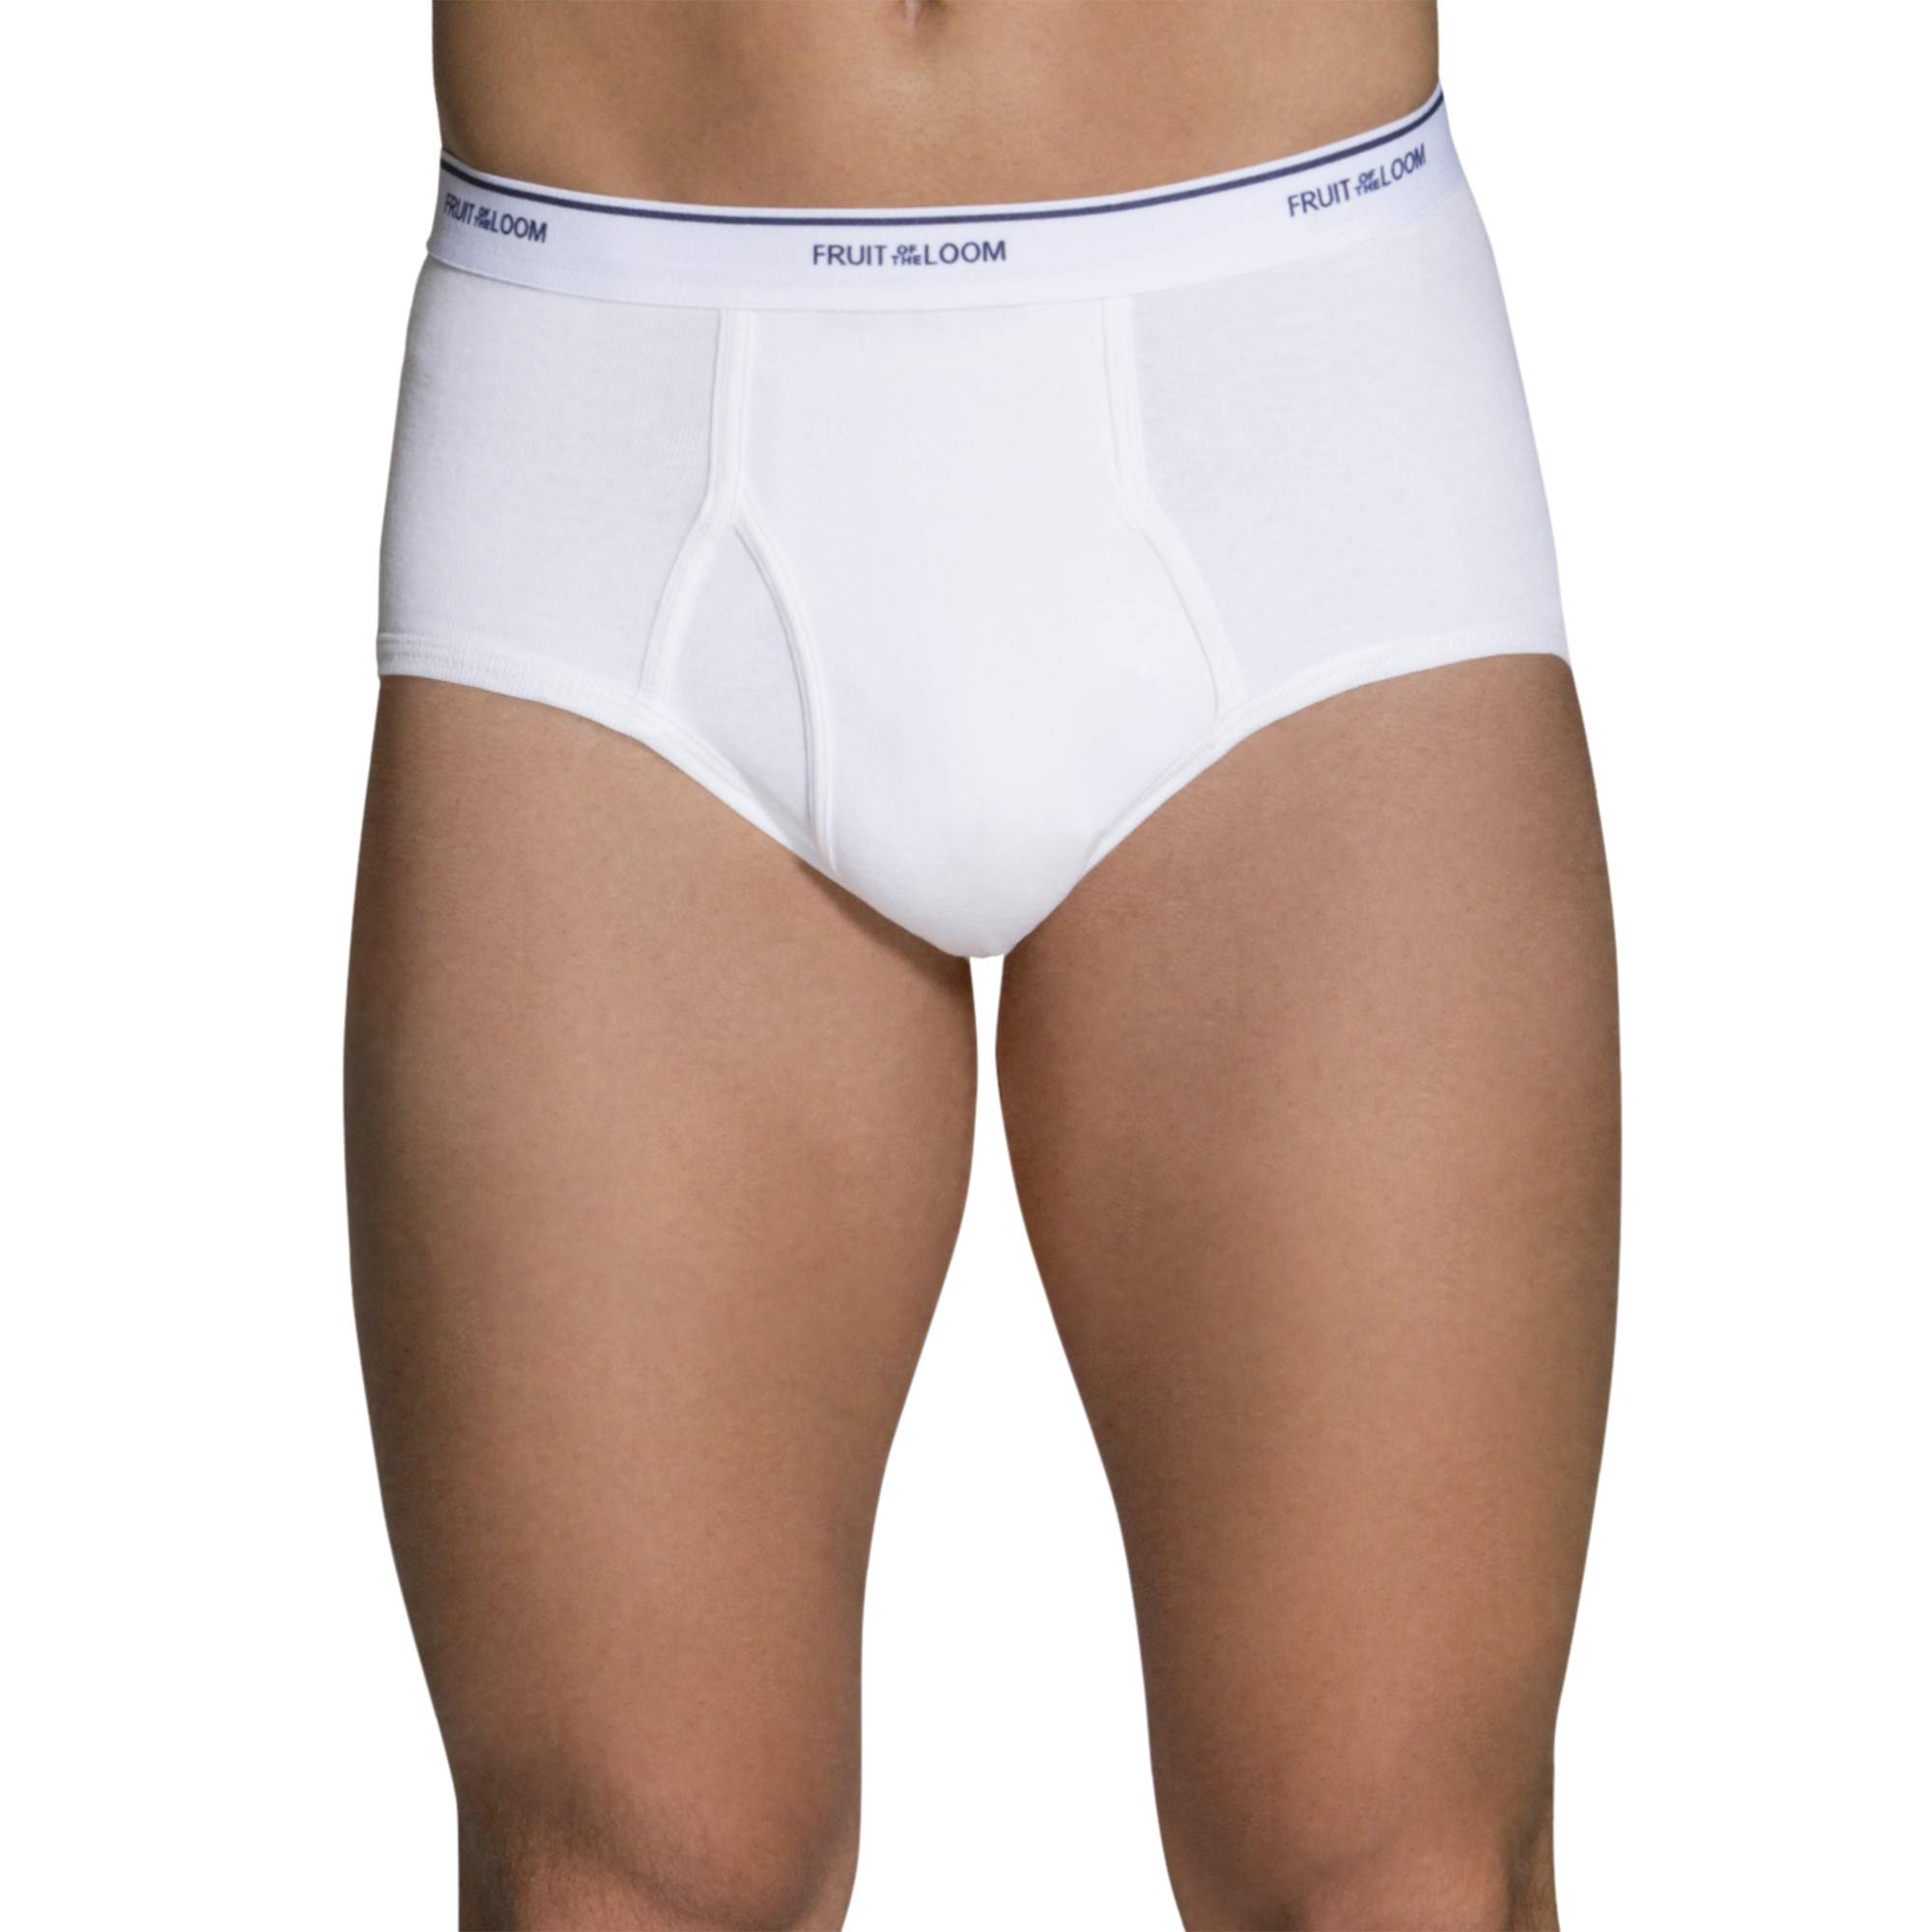 Fruit of the Loom Men's Tag Free Classic White Briefs, 7 Pack